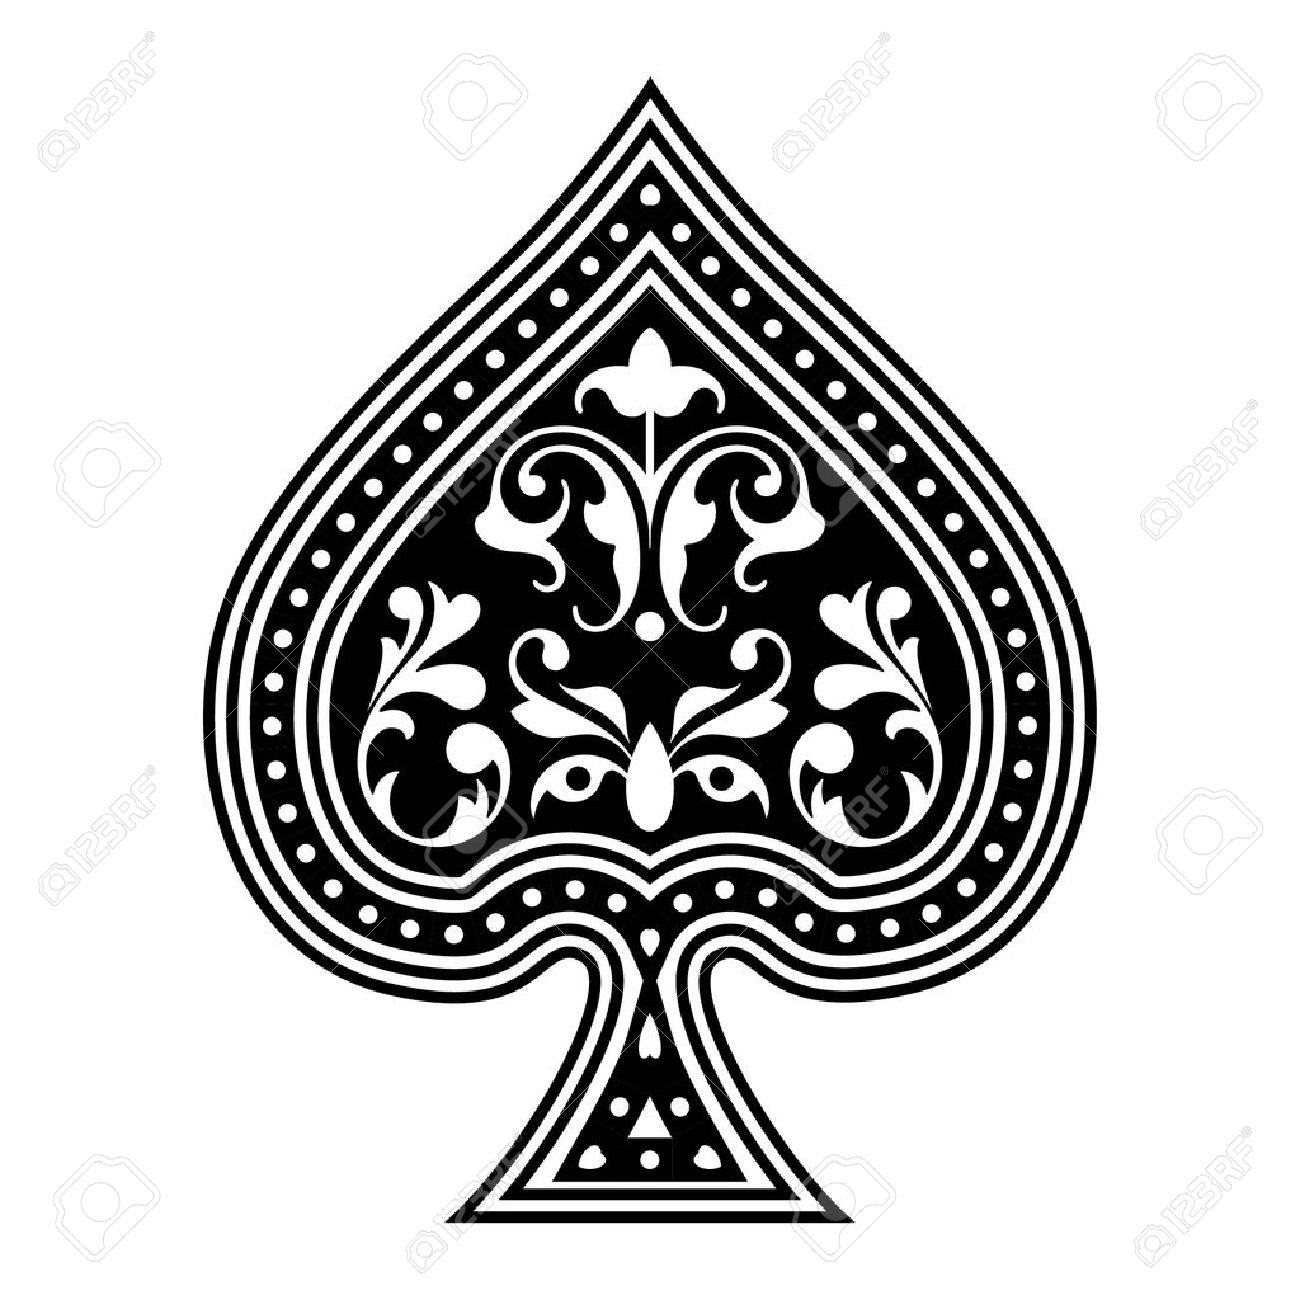 5,202 Ace Of Spades Stock Illustrations, Cliparts And Royalty Free ... png transparent stock